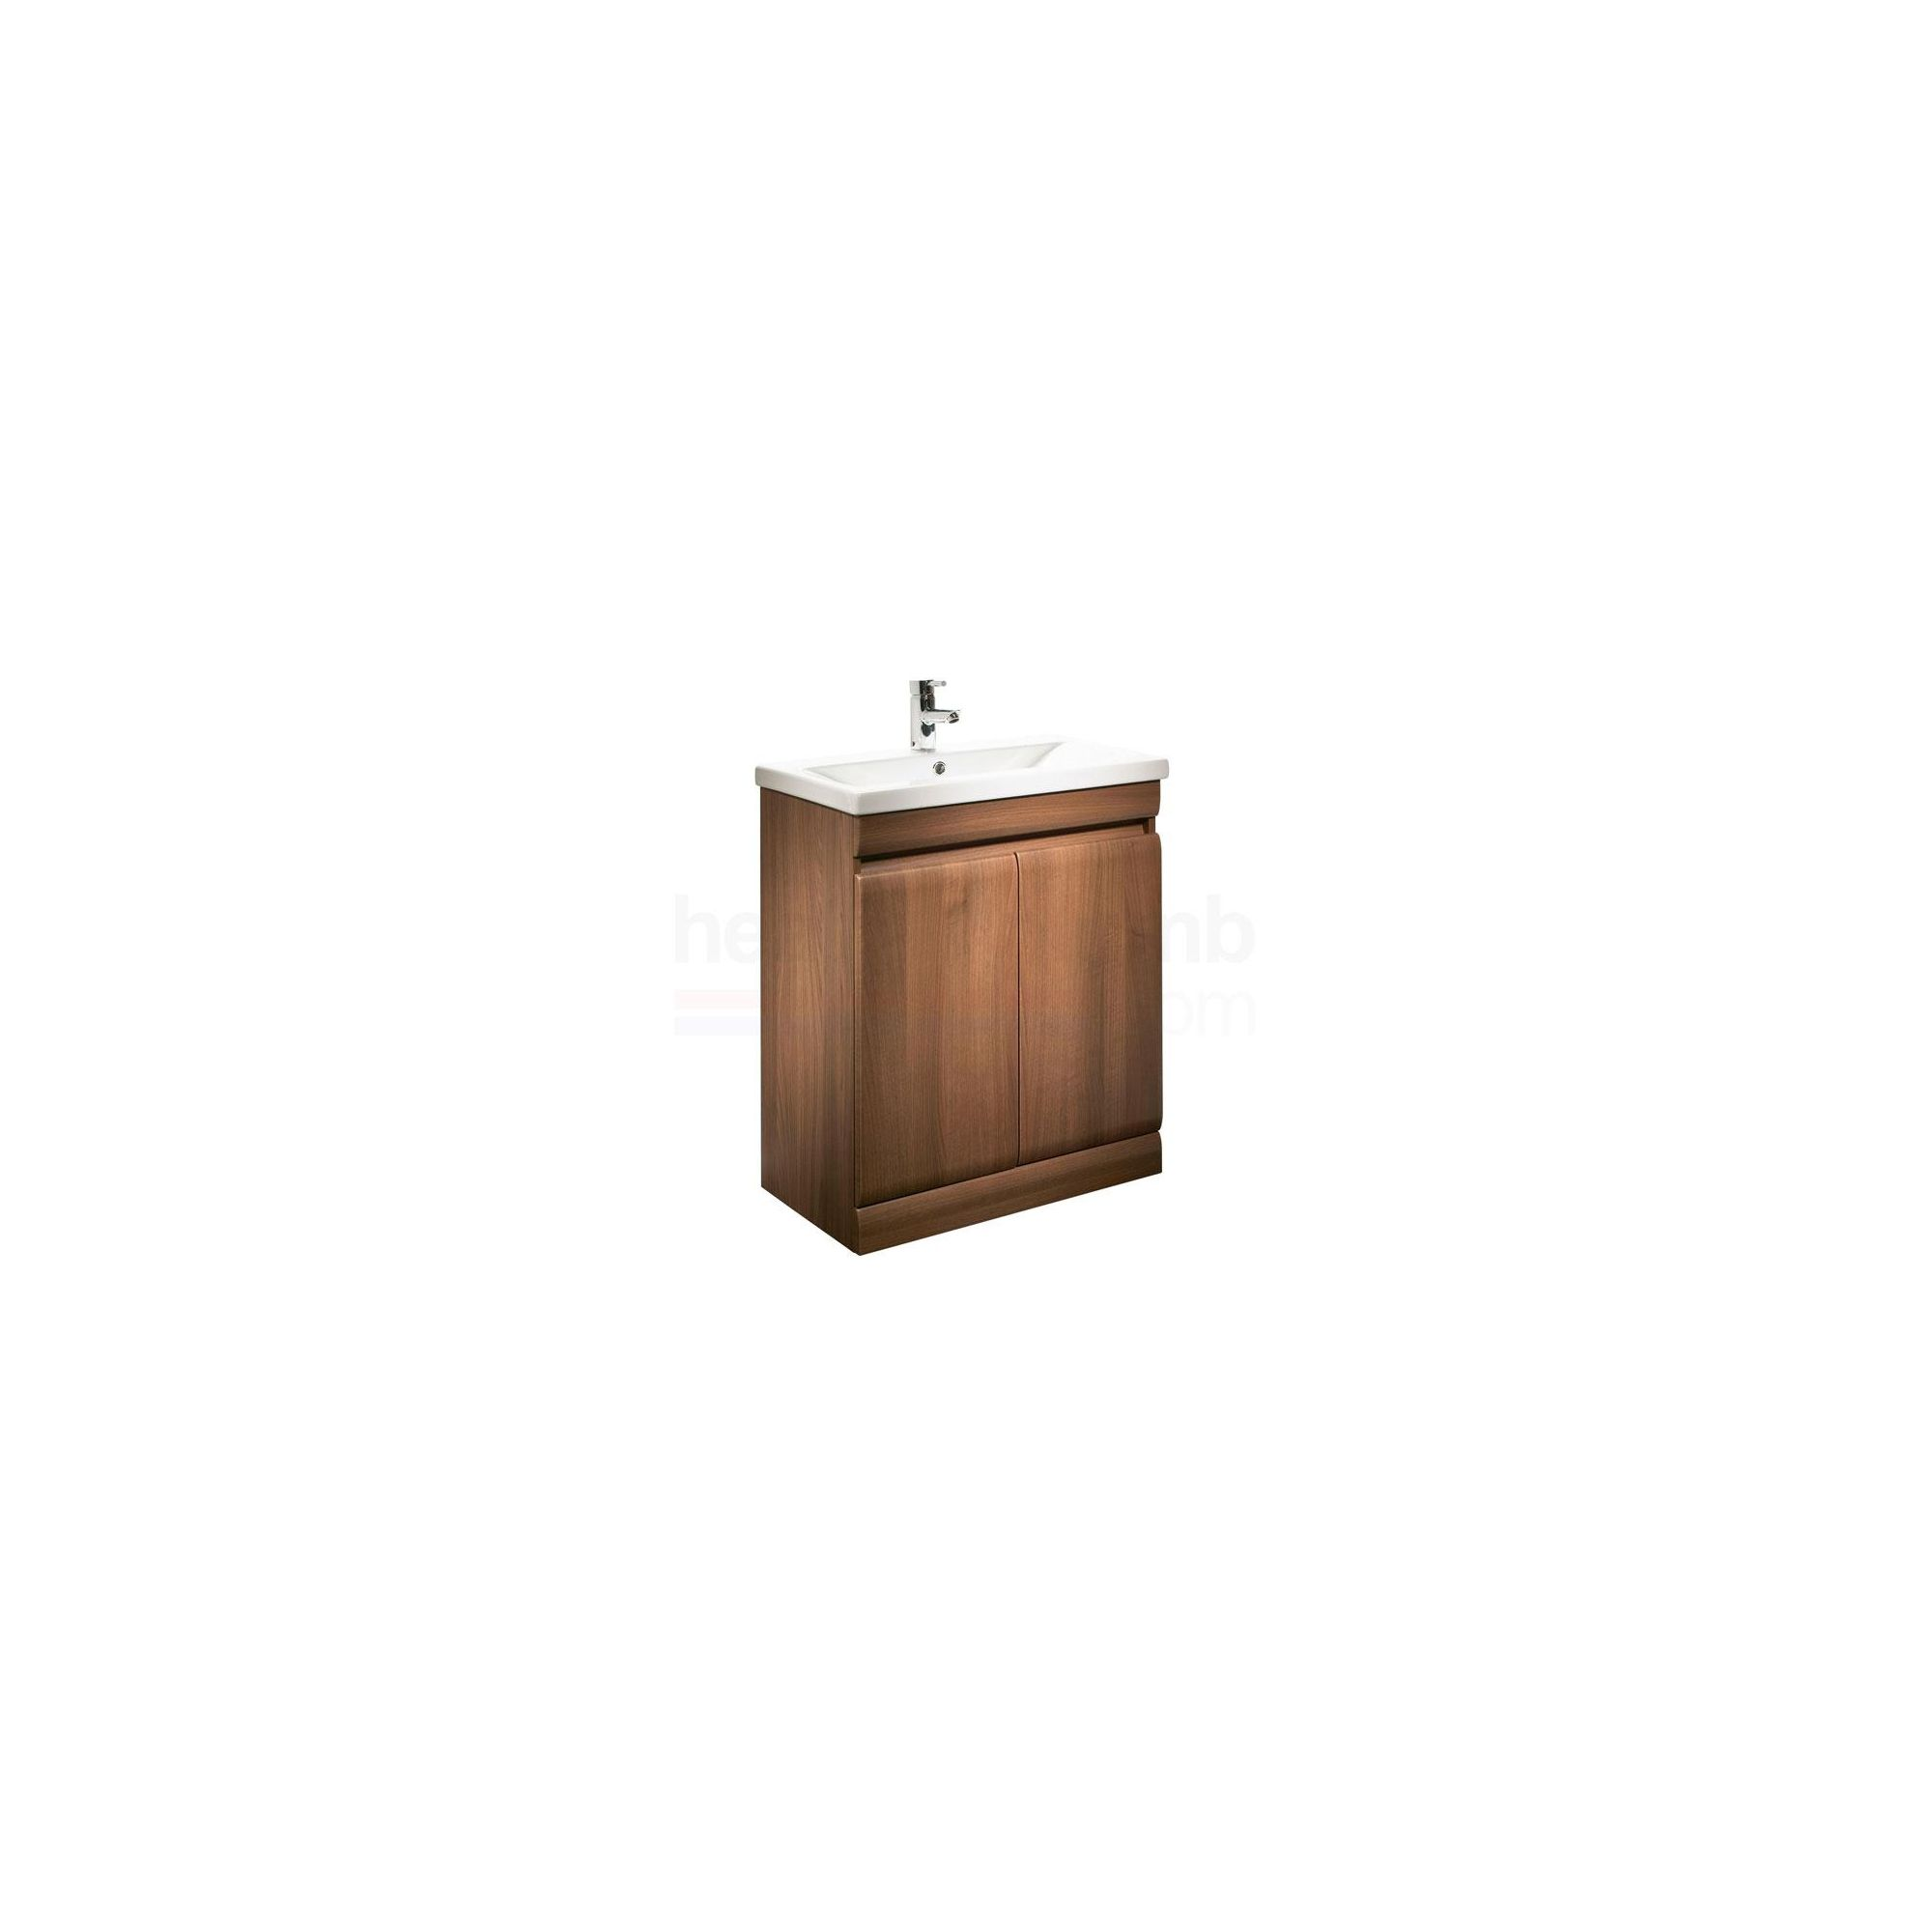 Tavistock Groove White Floor Standing Cabinet and Basin - 1 Tap Hole - 600mm Wide